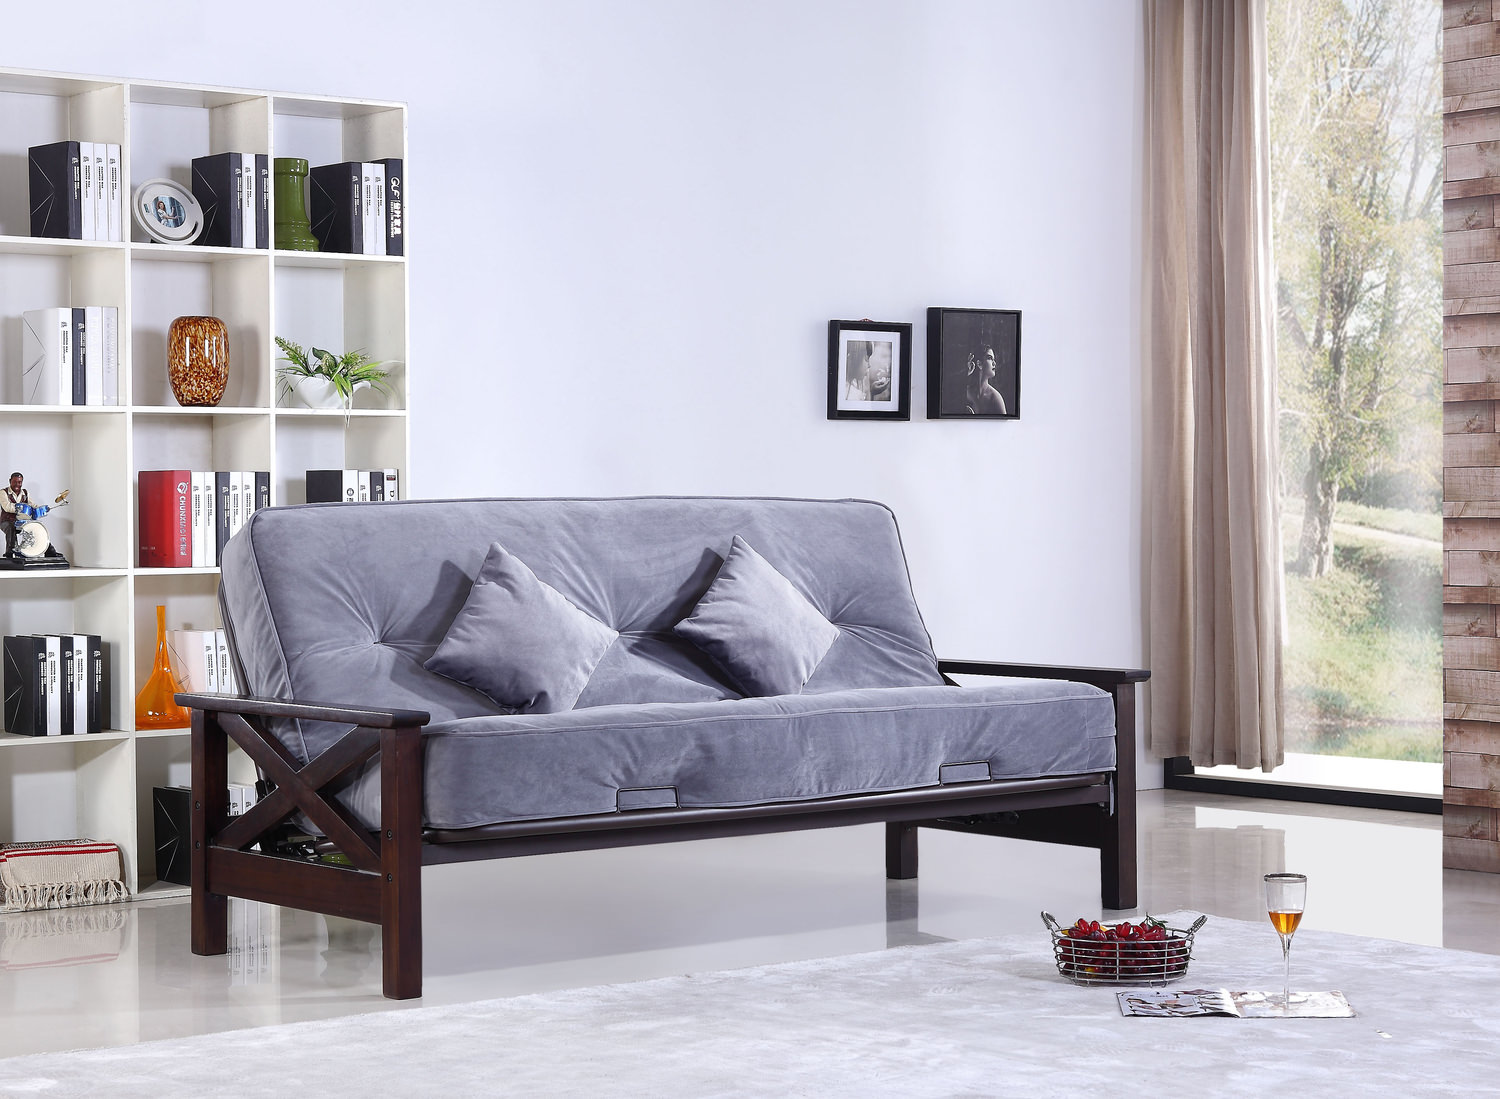 The Futon Frame And Mattress Set